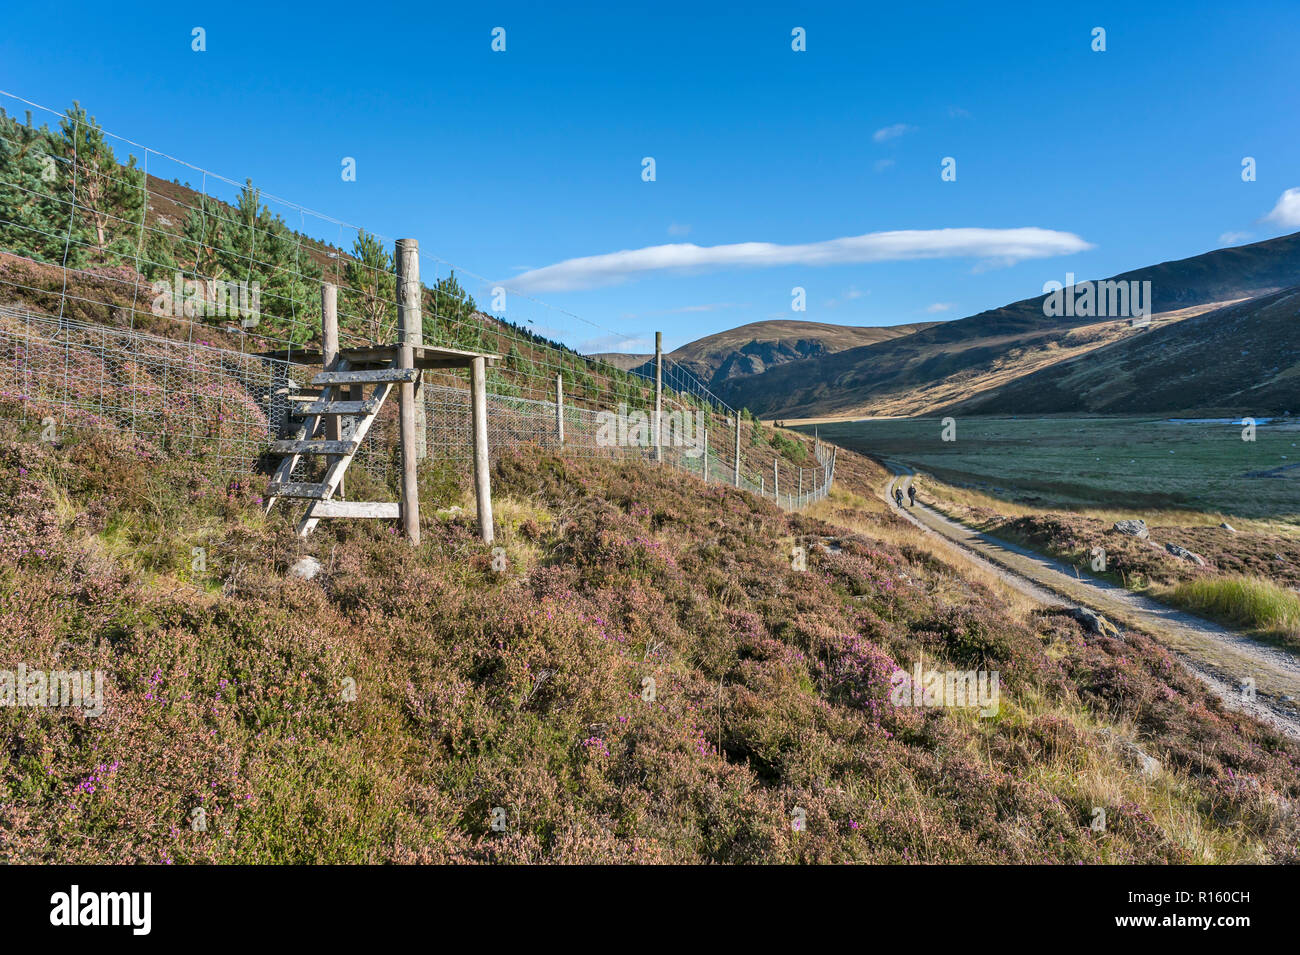 A stile over deer fence in Glen Esk with two female walkers hiking along path  in background - Stock Image